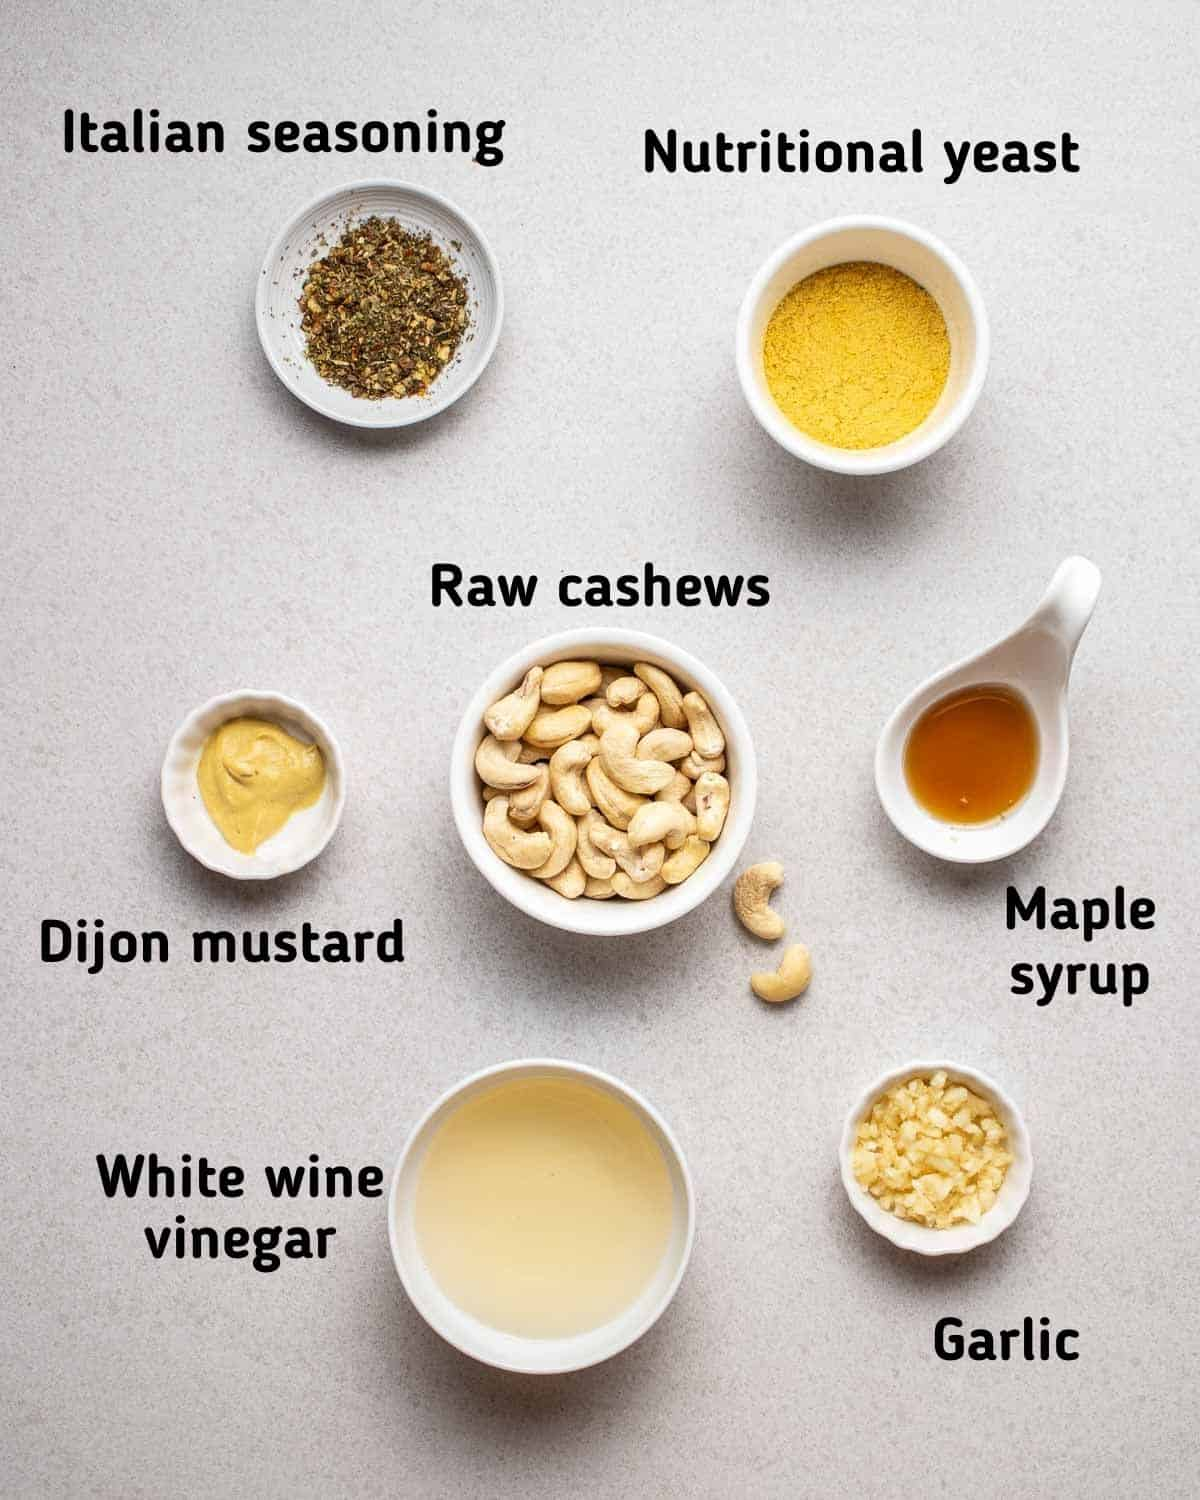 Ingredients needed for dressing like cashews, nutritional yeast, garlic and other seasonings.